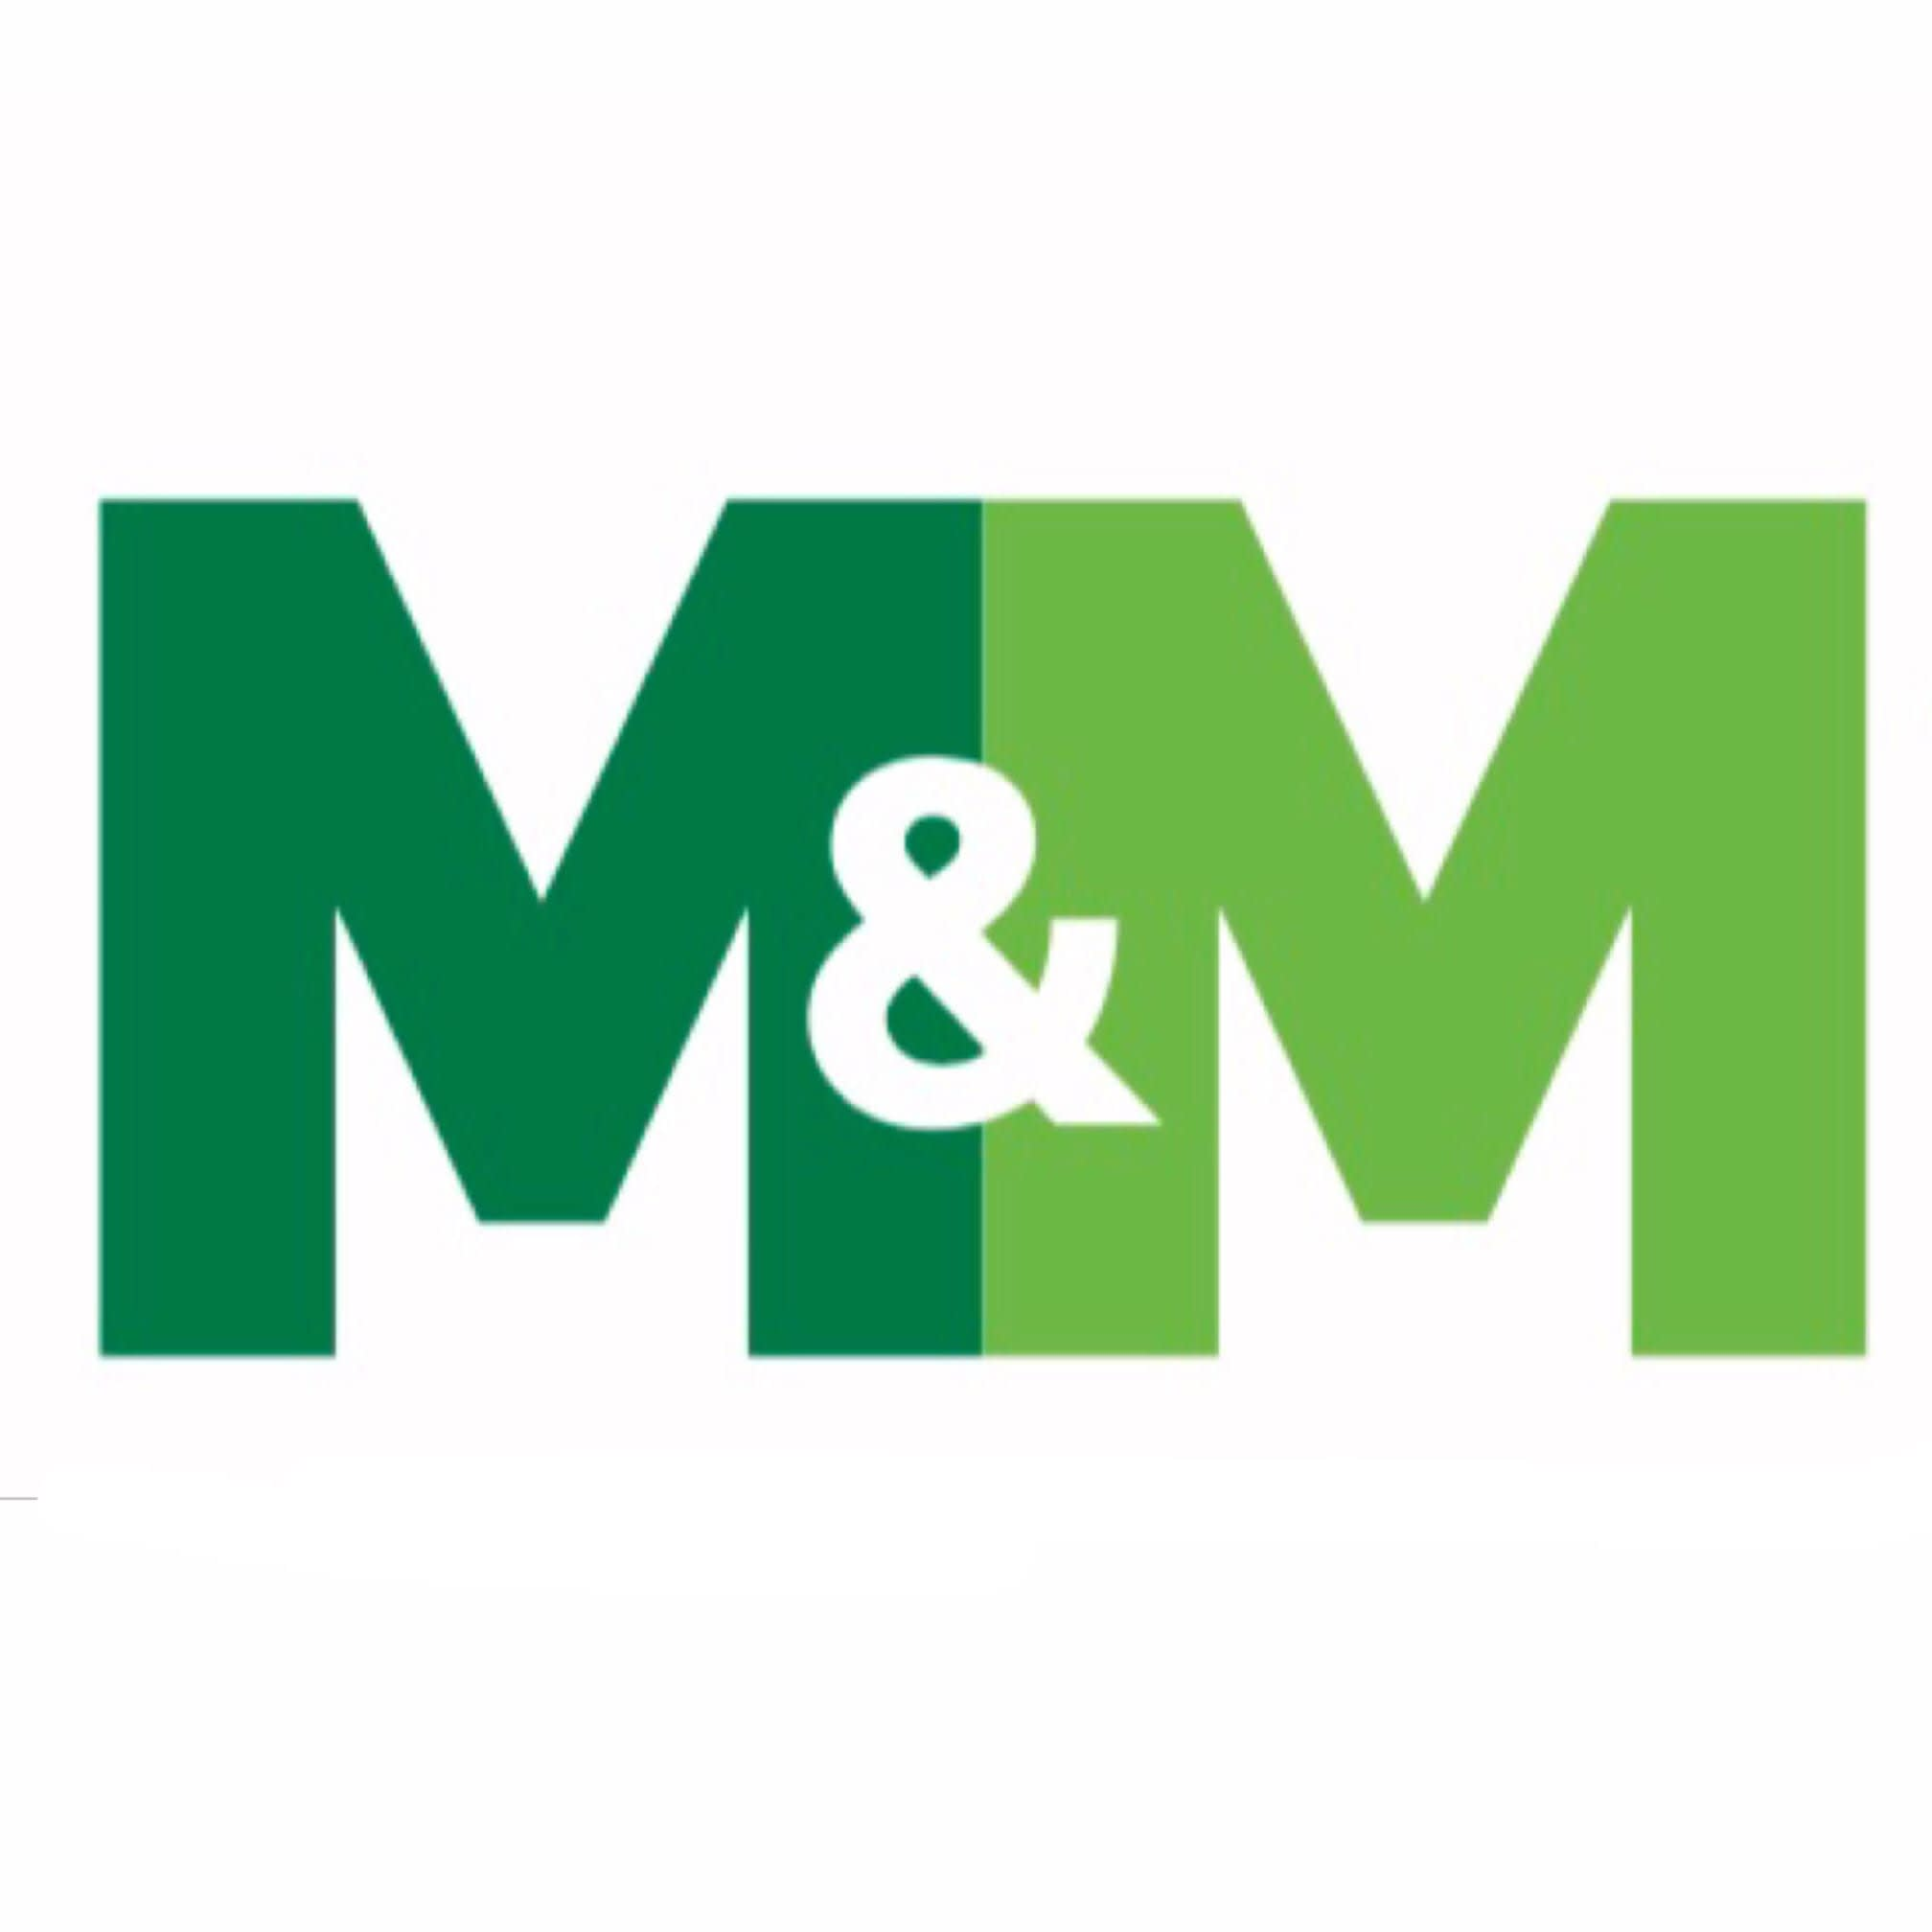 M & M Garden Maintenance - Crewe, Cheshire CW1 4NX - 07856 726558 | ShowMeLocal.com